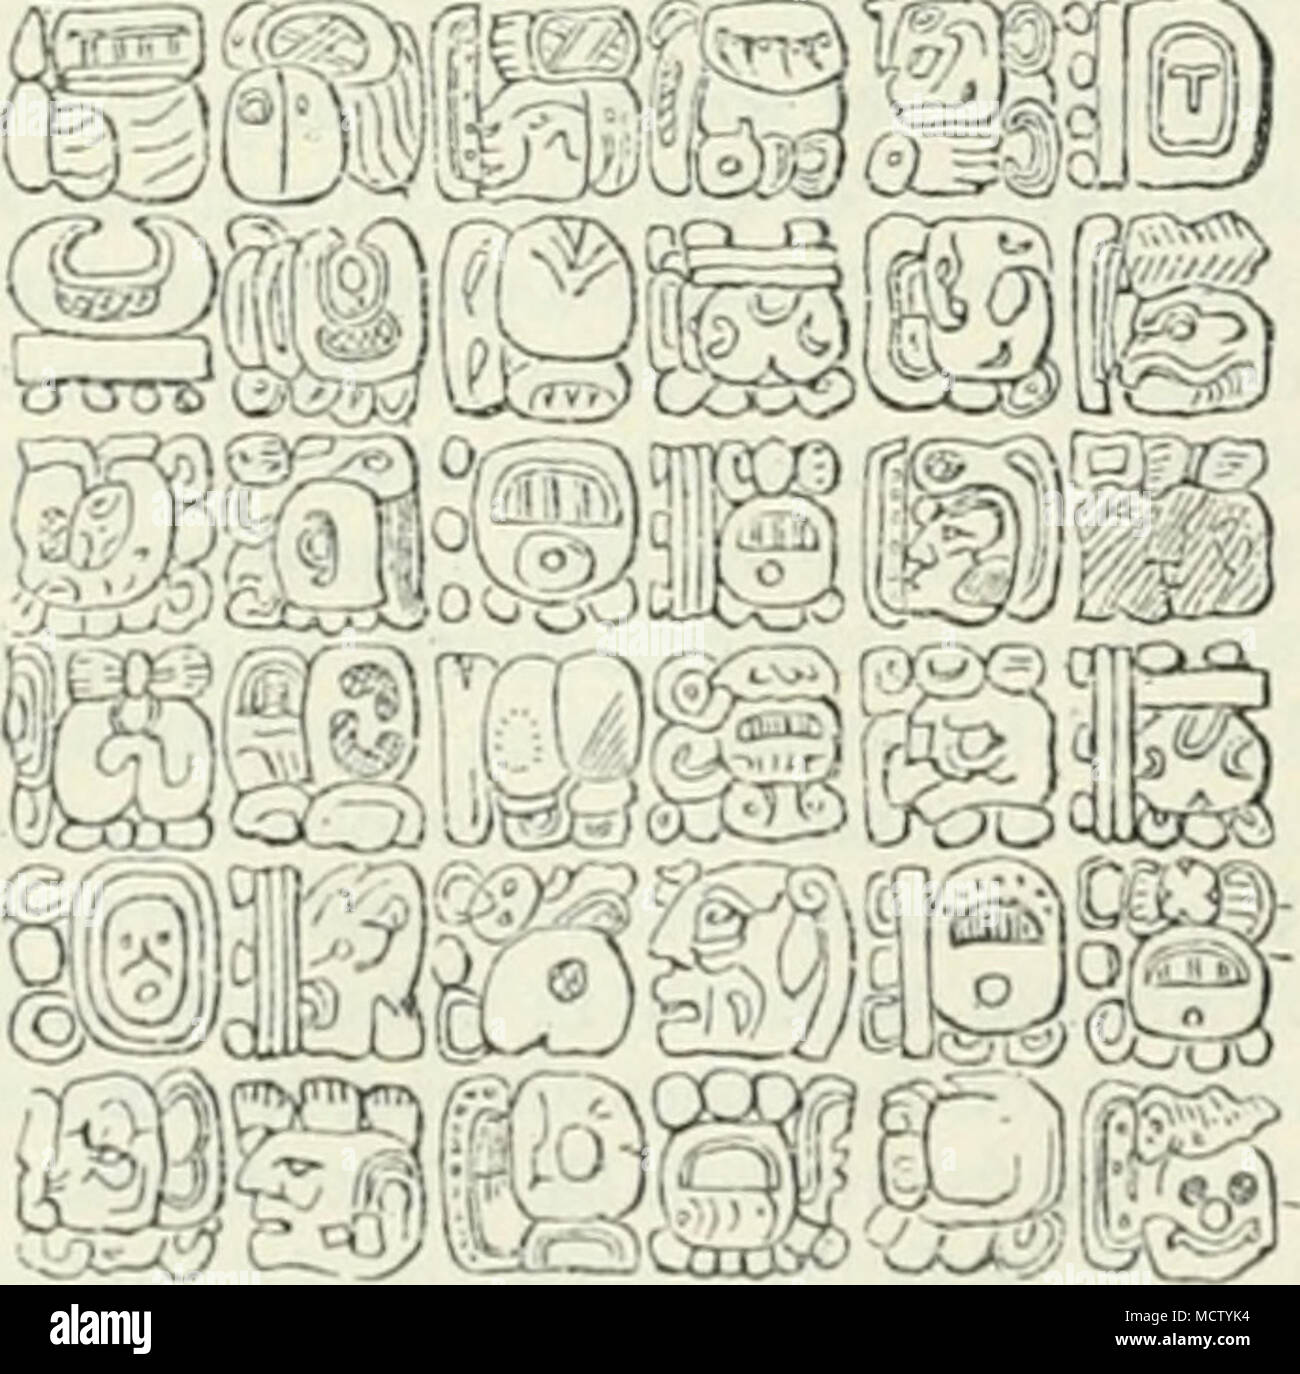 Tablet of Maya writing from a temple at Palenque  place a higher